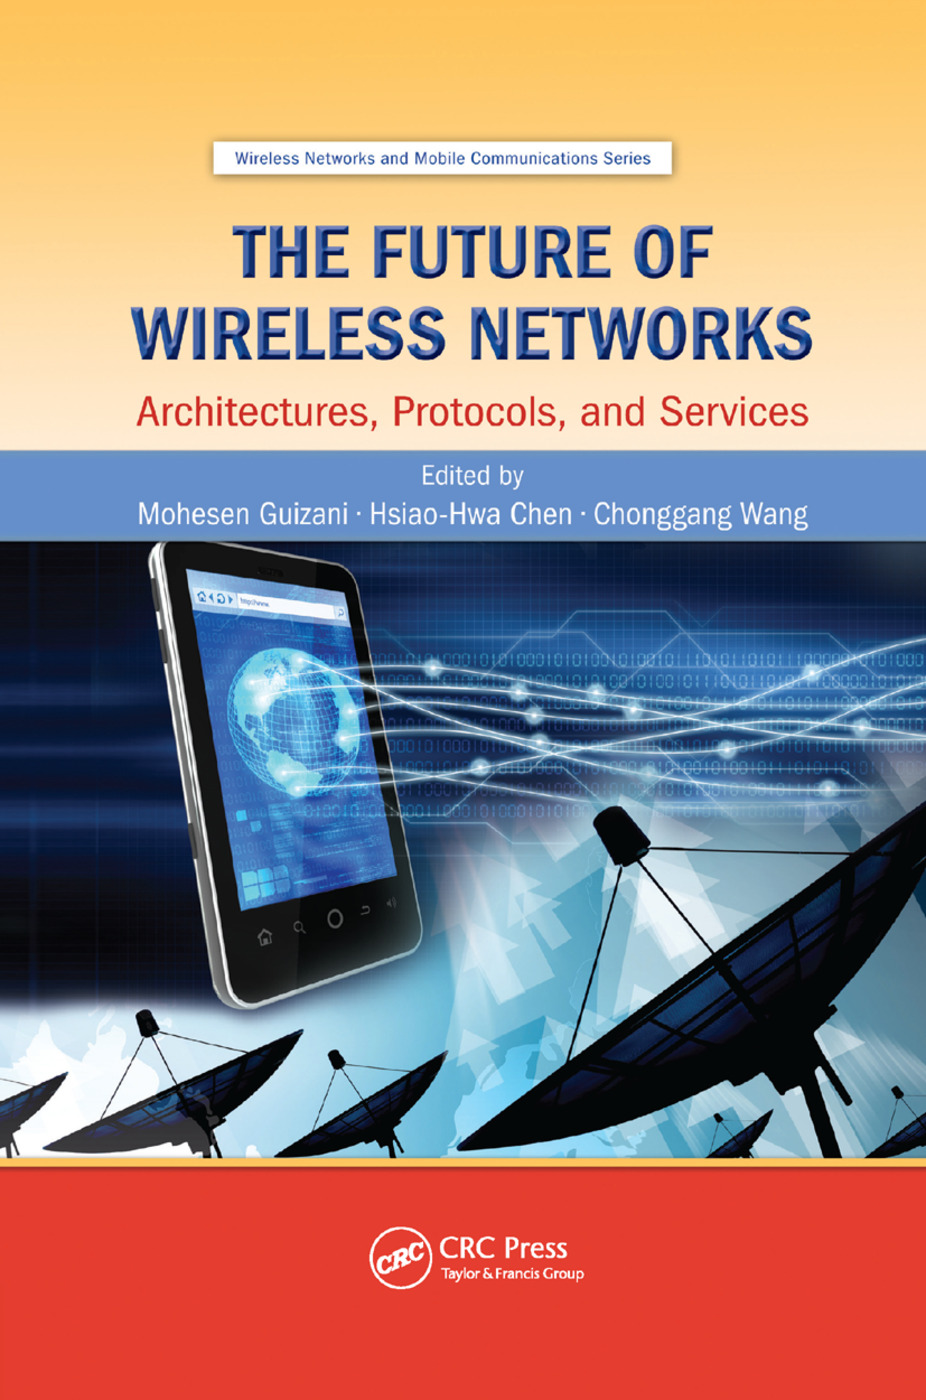 The Future of Wireless Networks: Architectures, Protocols, and Services book cover